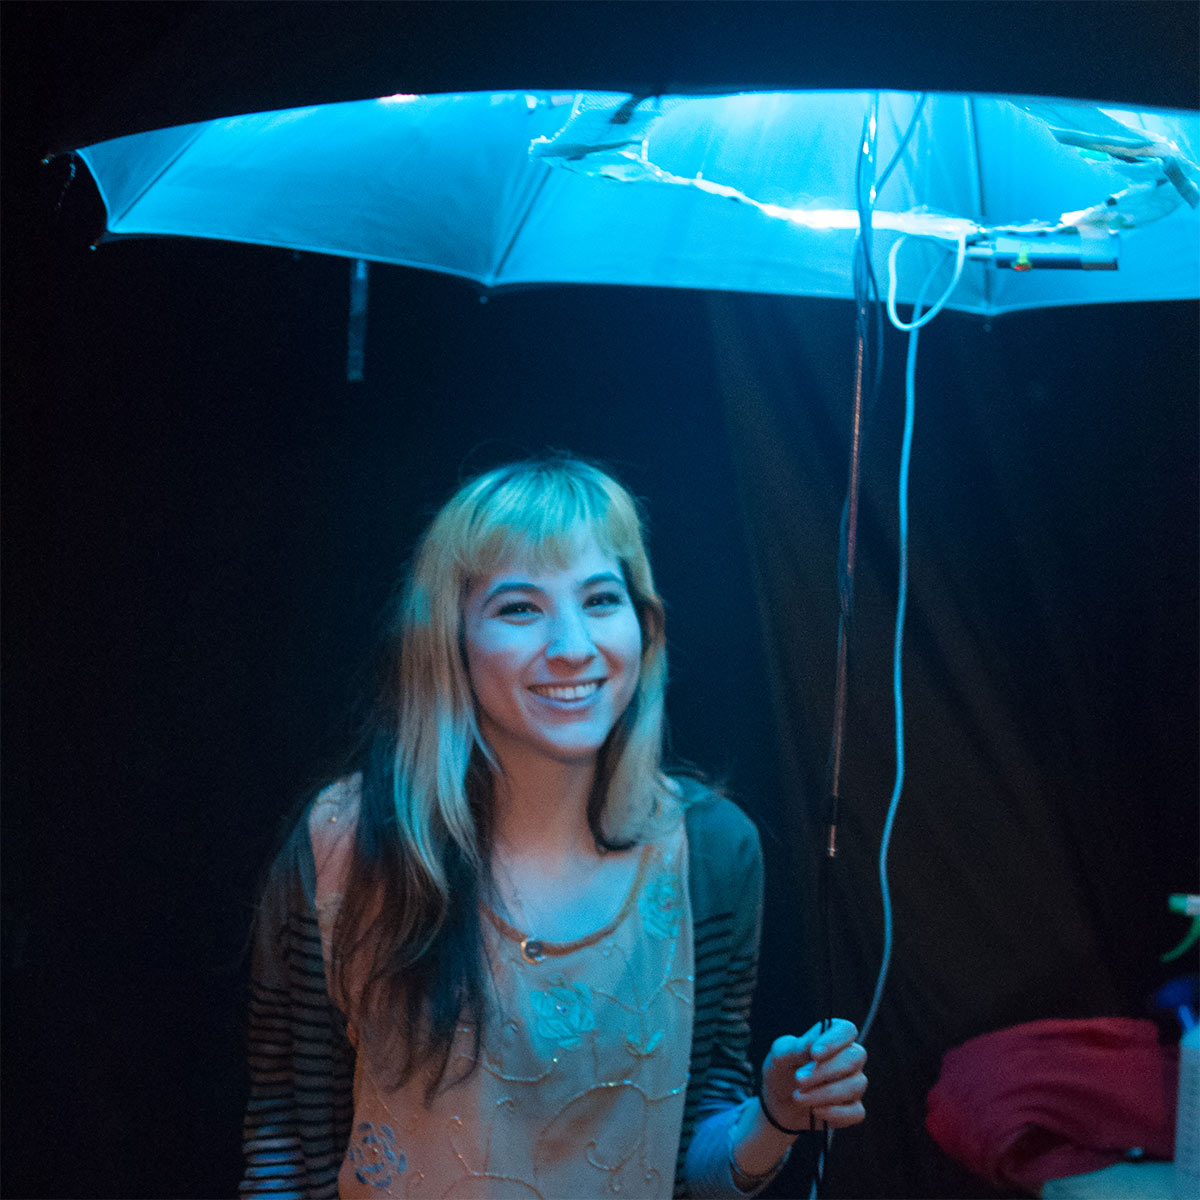 a woman holding an umbrella with lights illuminating it from within